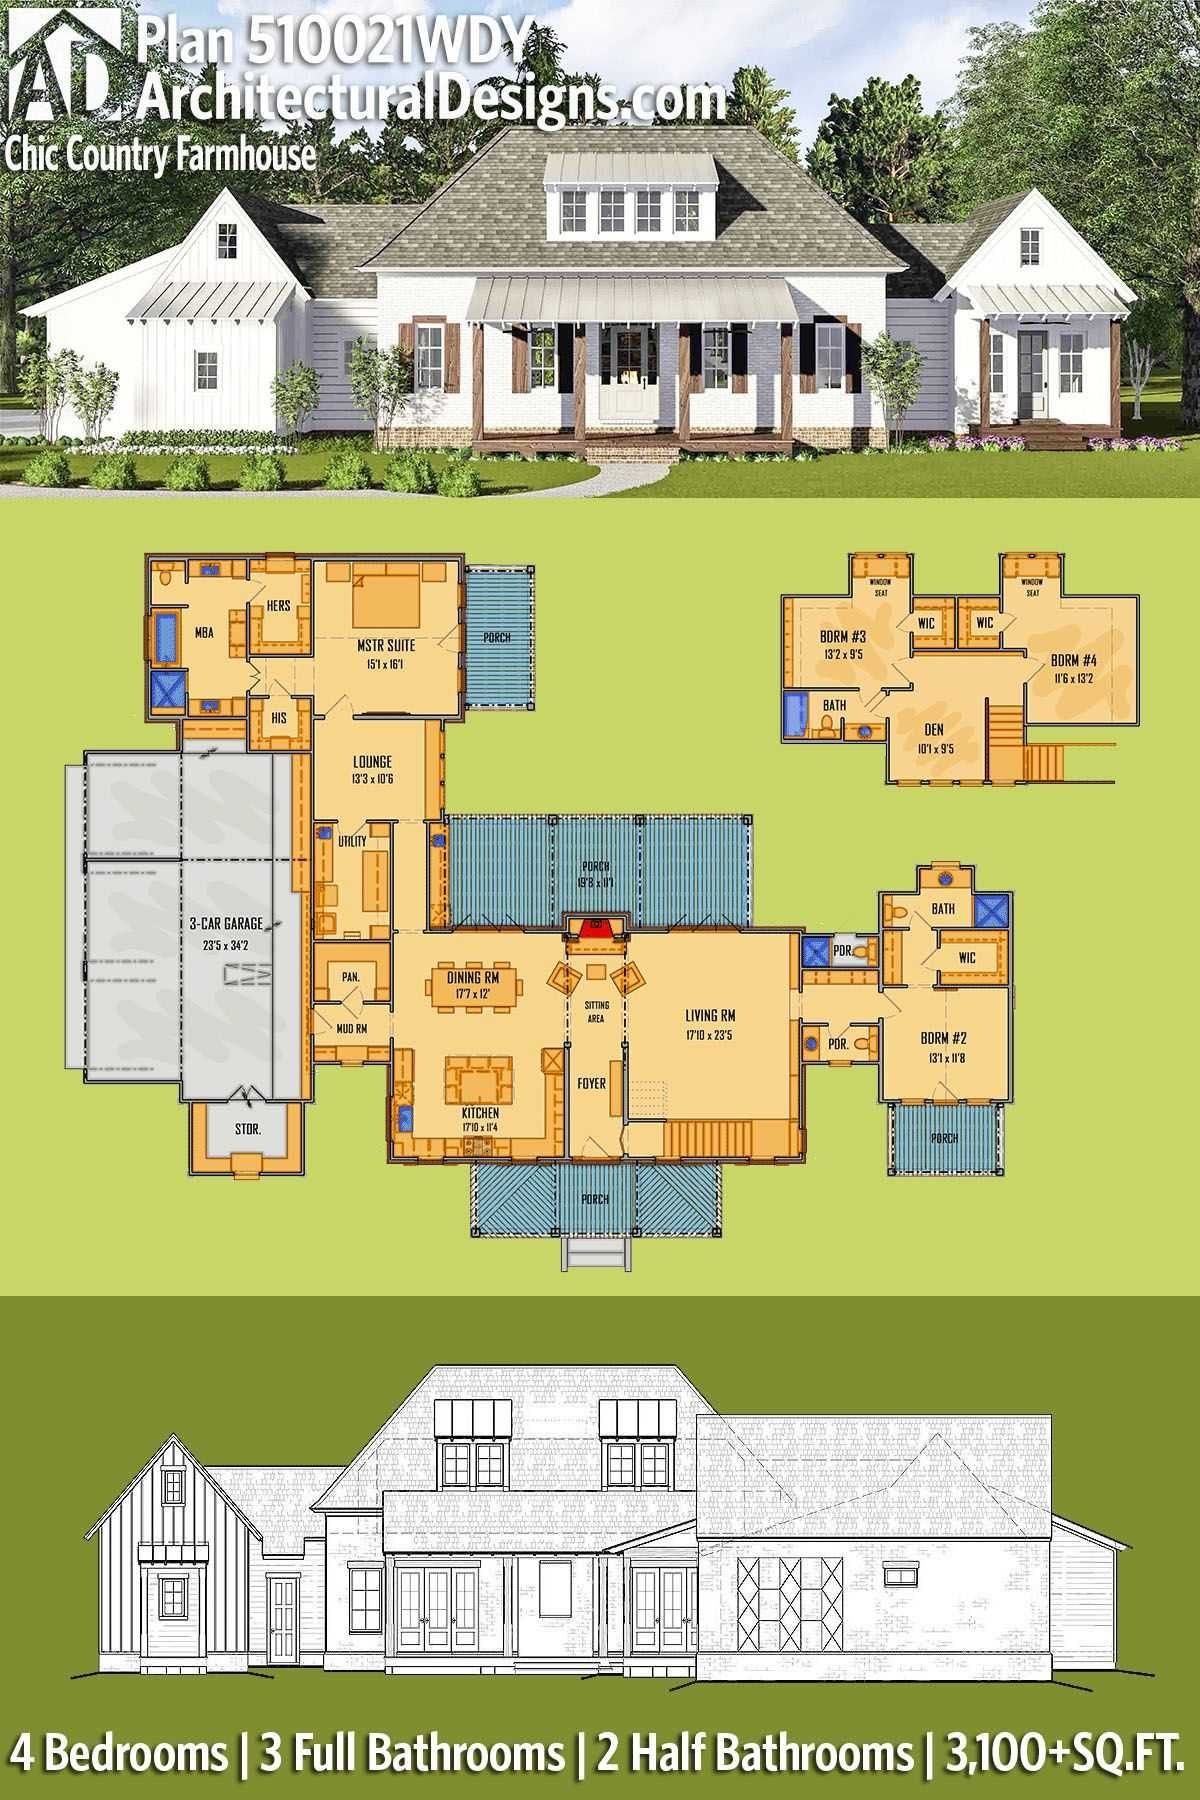 American Farmhouse Architecture Awesome American Farmhouse Architecture Small Tudor Architectural Design House Plans House Plans Farmhouse House Blueprints